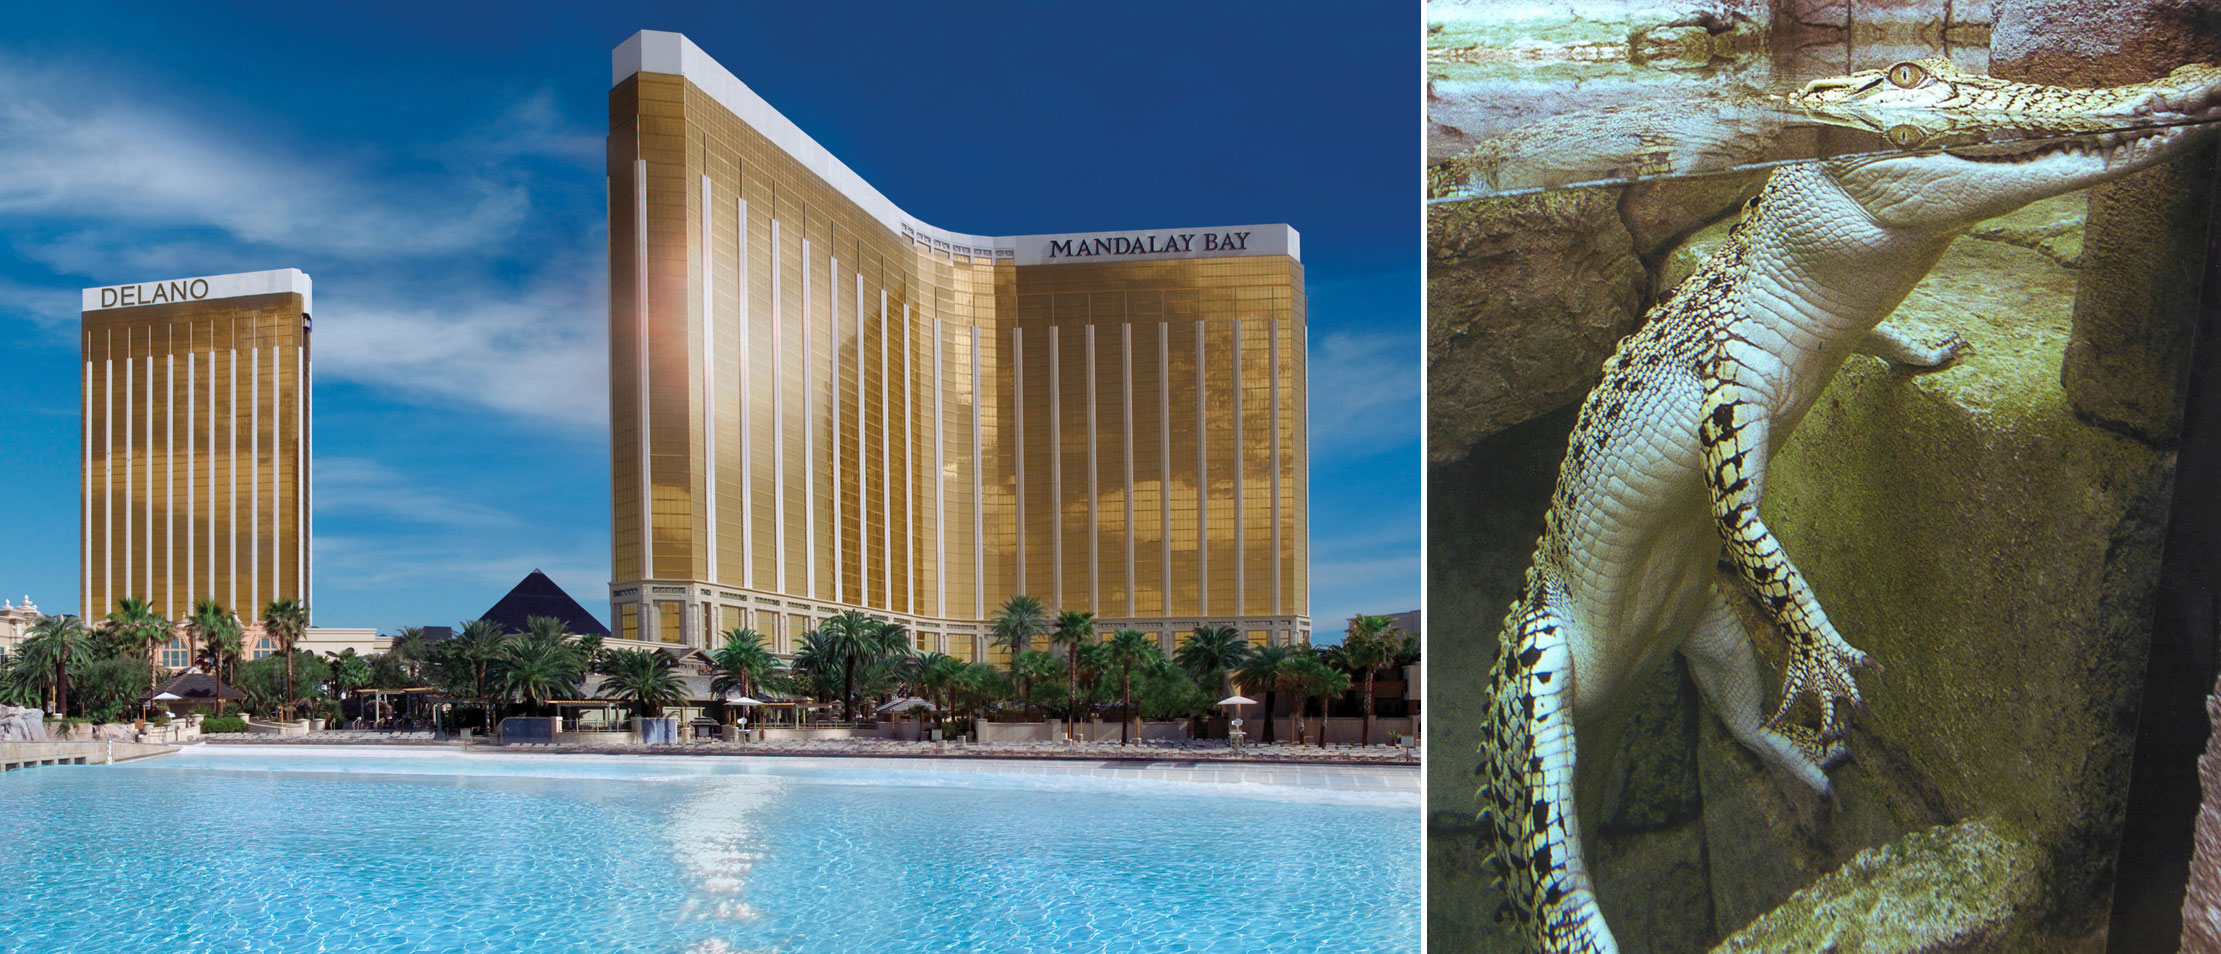 Mandalay Bay exterior and Shark Reef